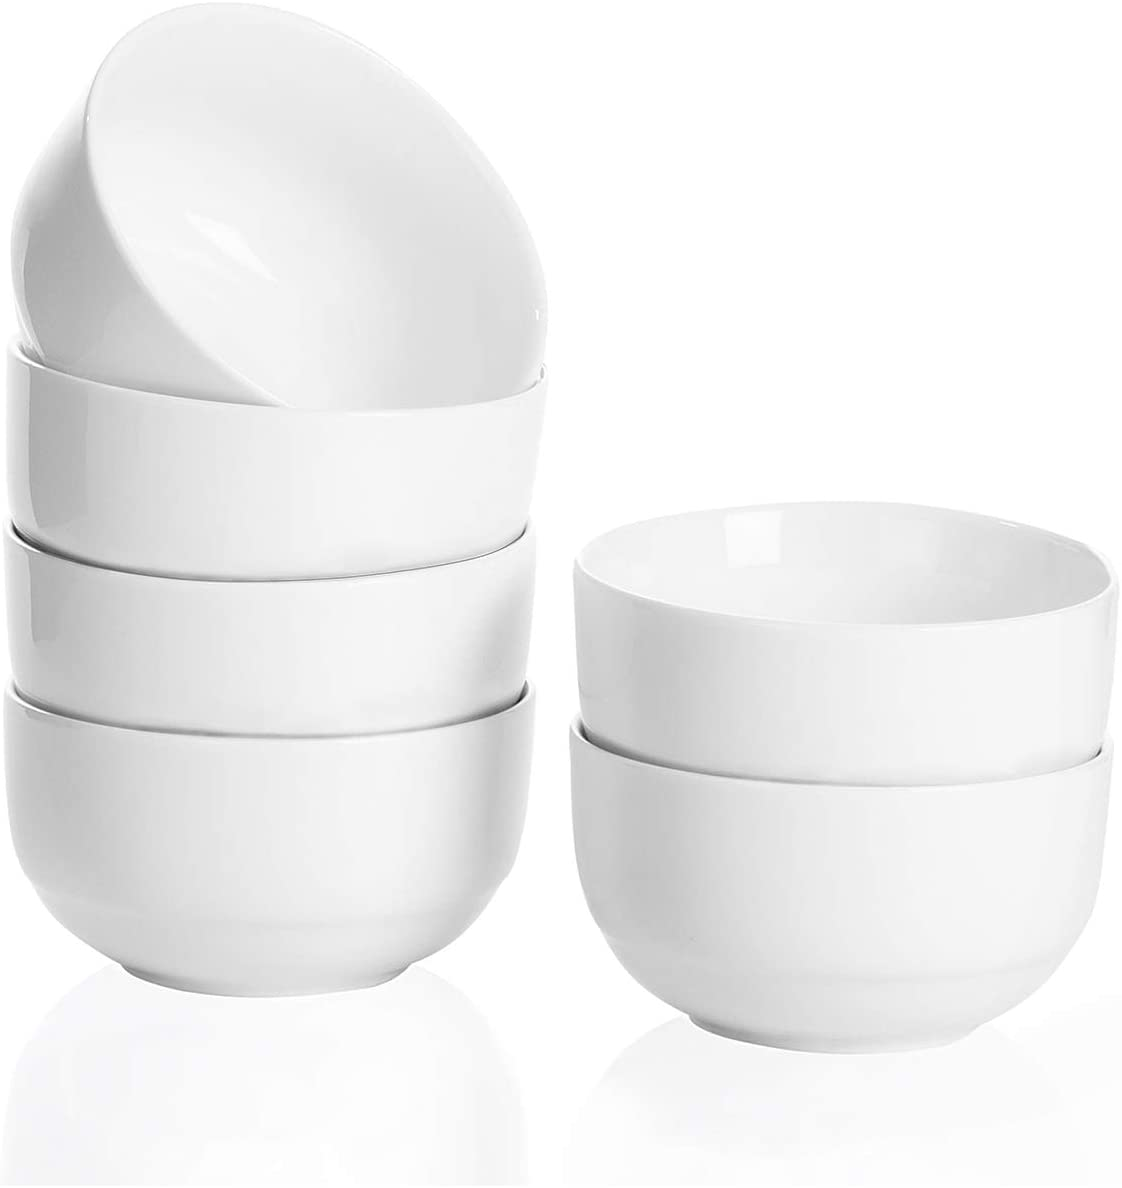 Bowls Set, 10 Ounce Porcelain Bowls for Cereal Fruit Soup, Small Bowls Set of 6 (White, 4.25 inch)